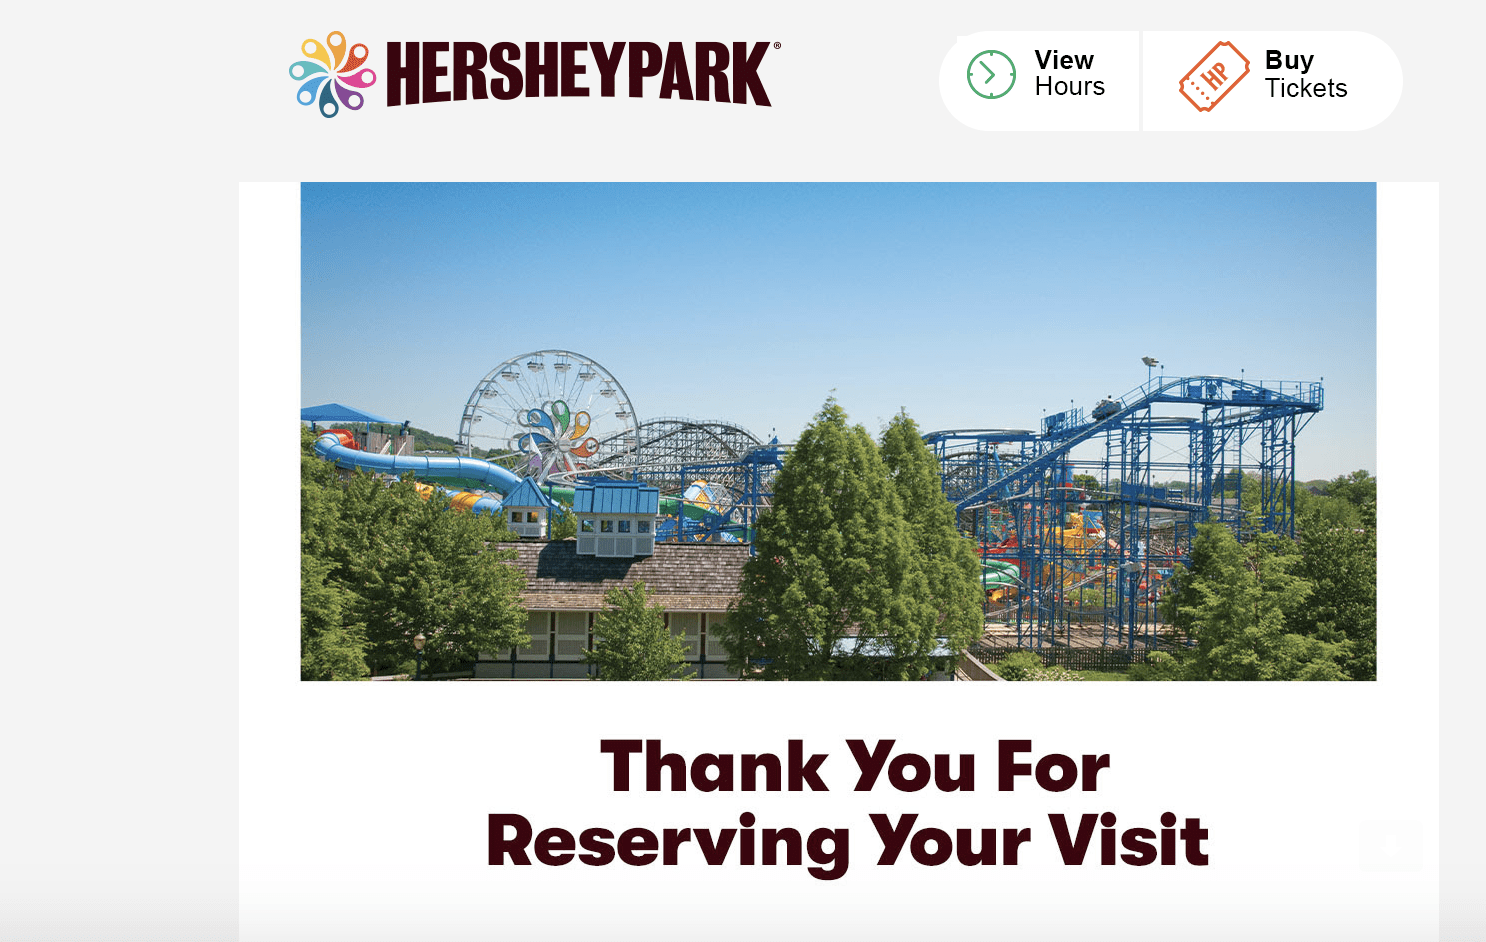 hersheypark reopens July 3